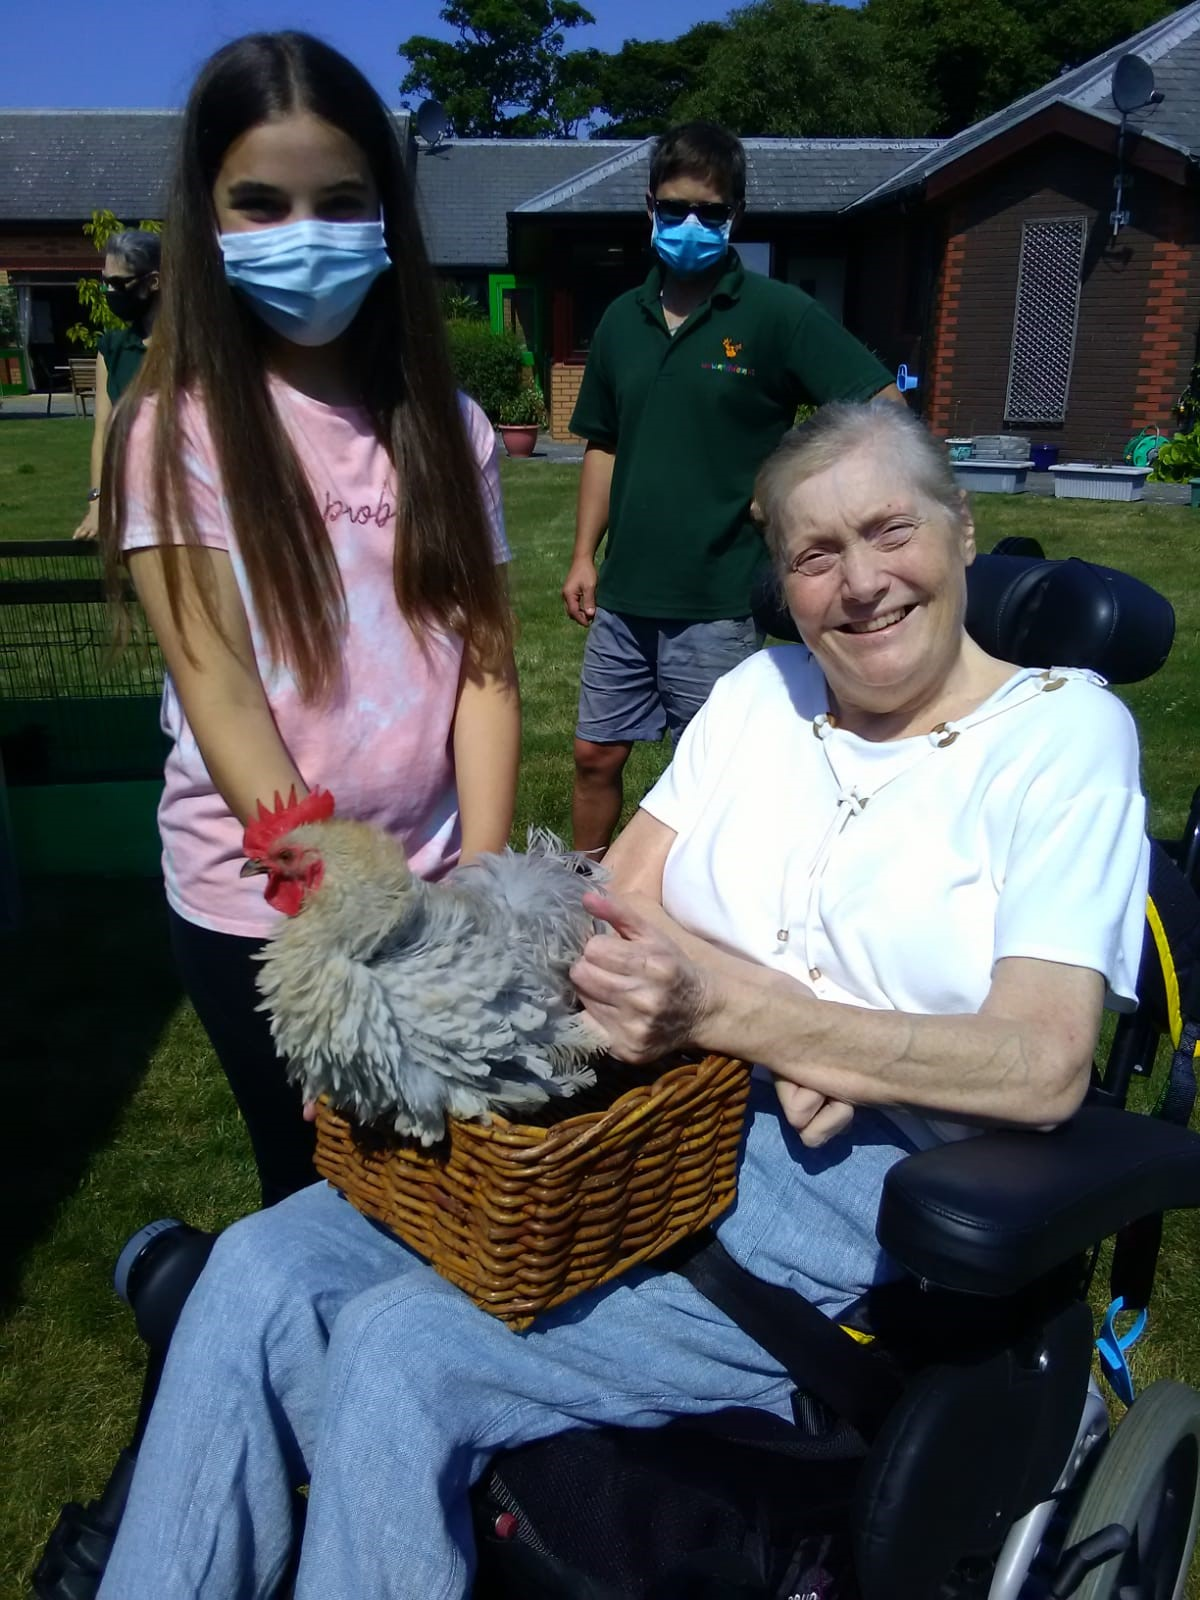 Care home residents enjoy 'petting zoo'